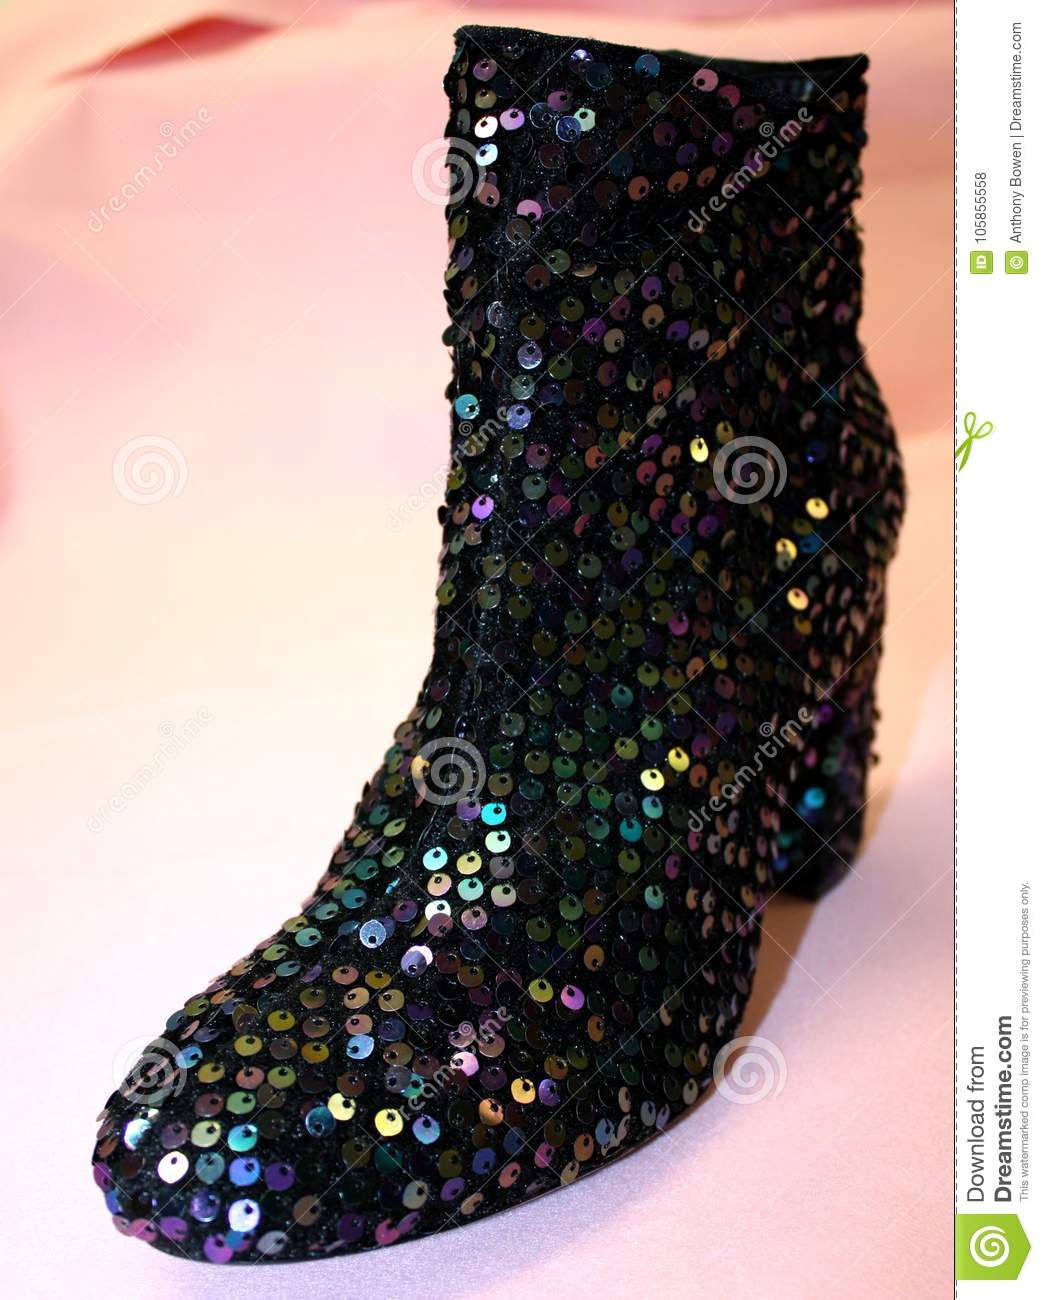 Sparkly Boots stock photo. Image of